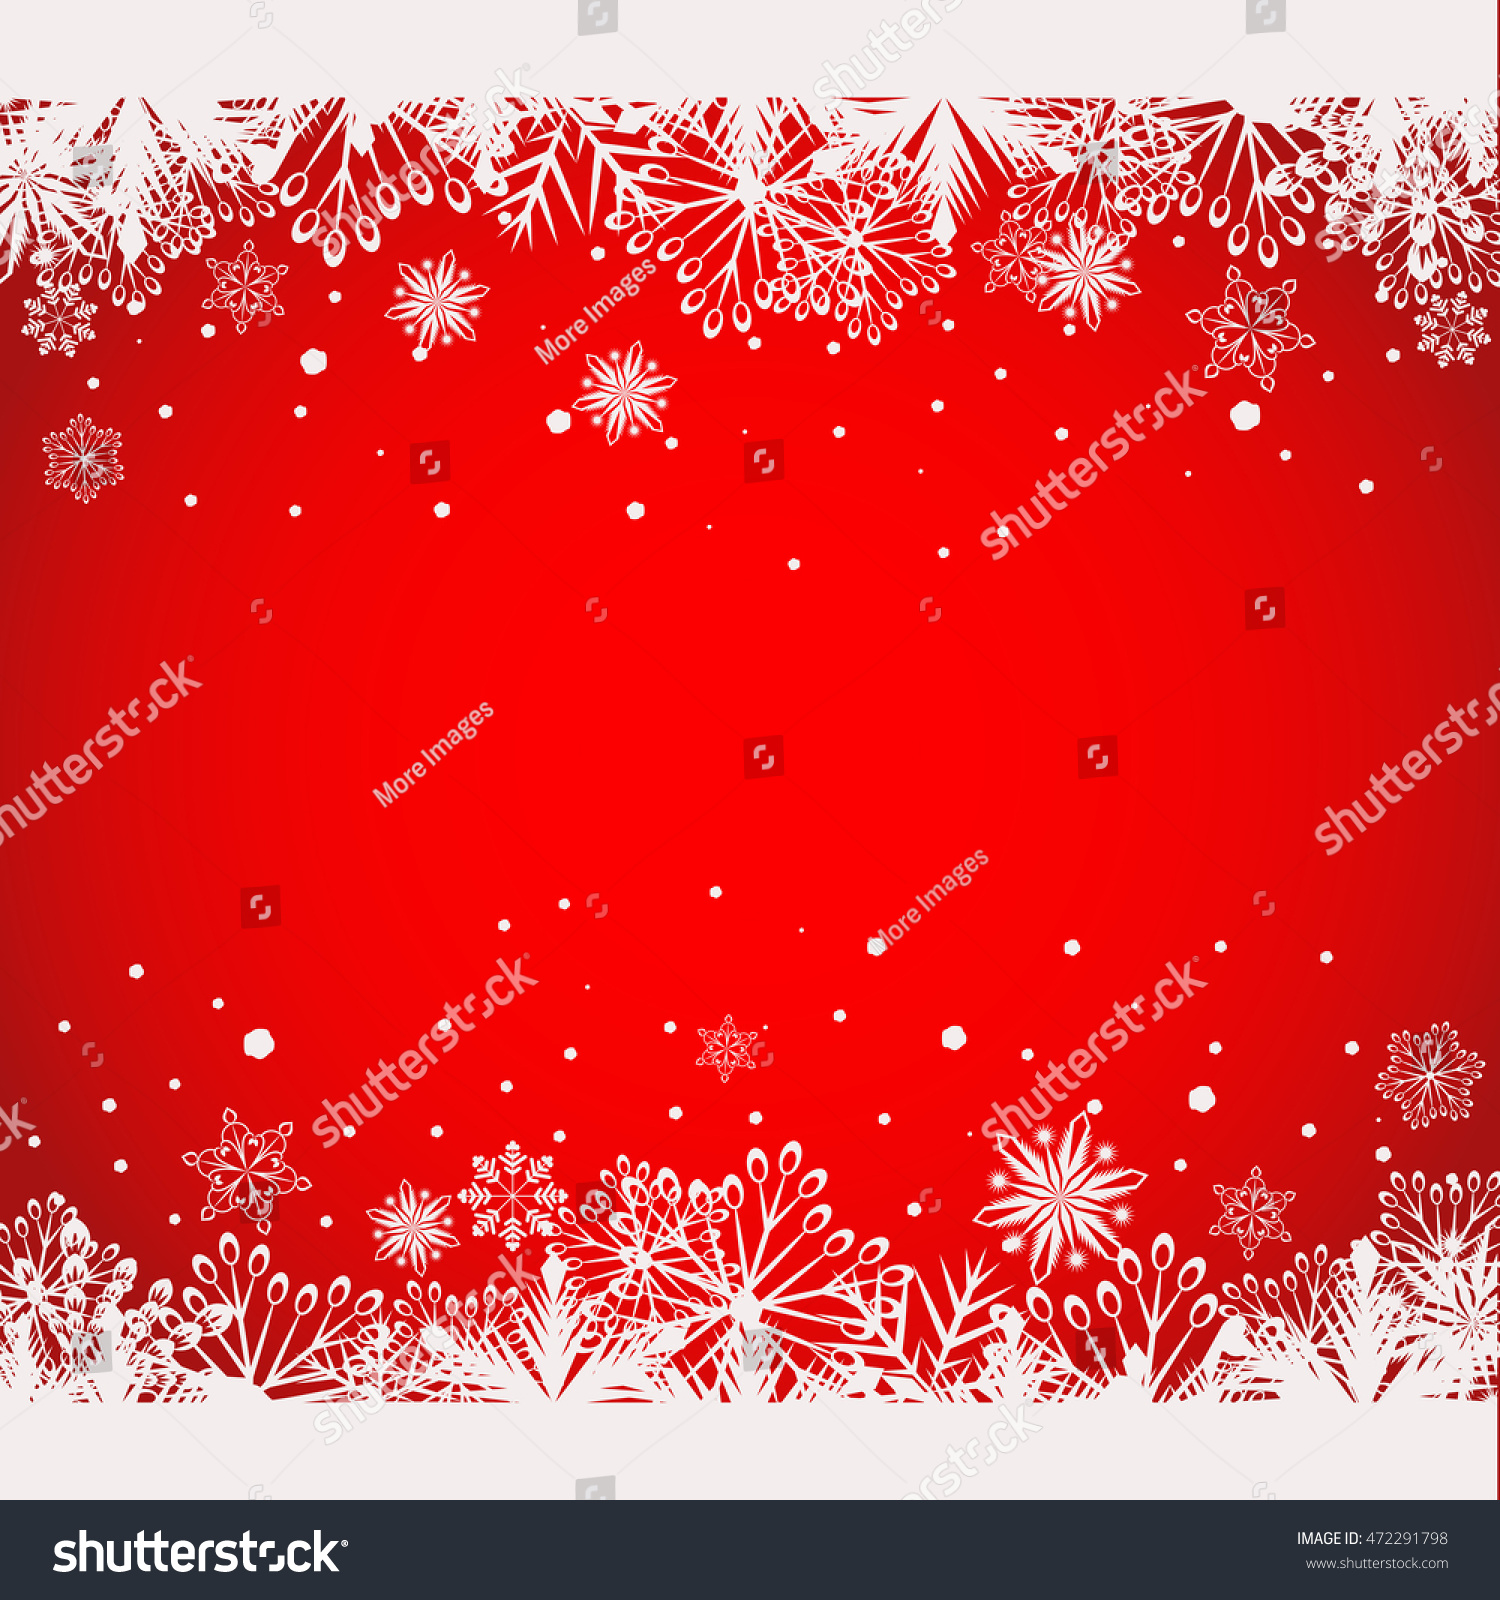 Abstract Red Christmas Background White Snowflake Stock Vector ...